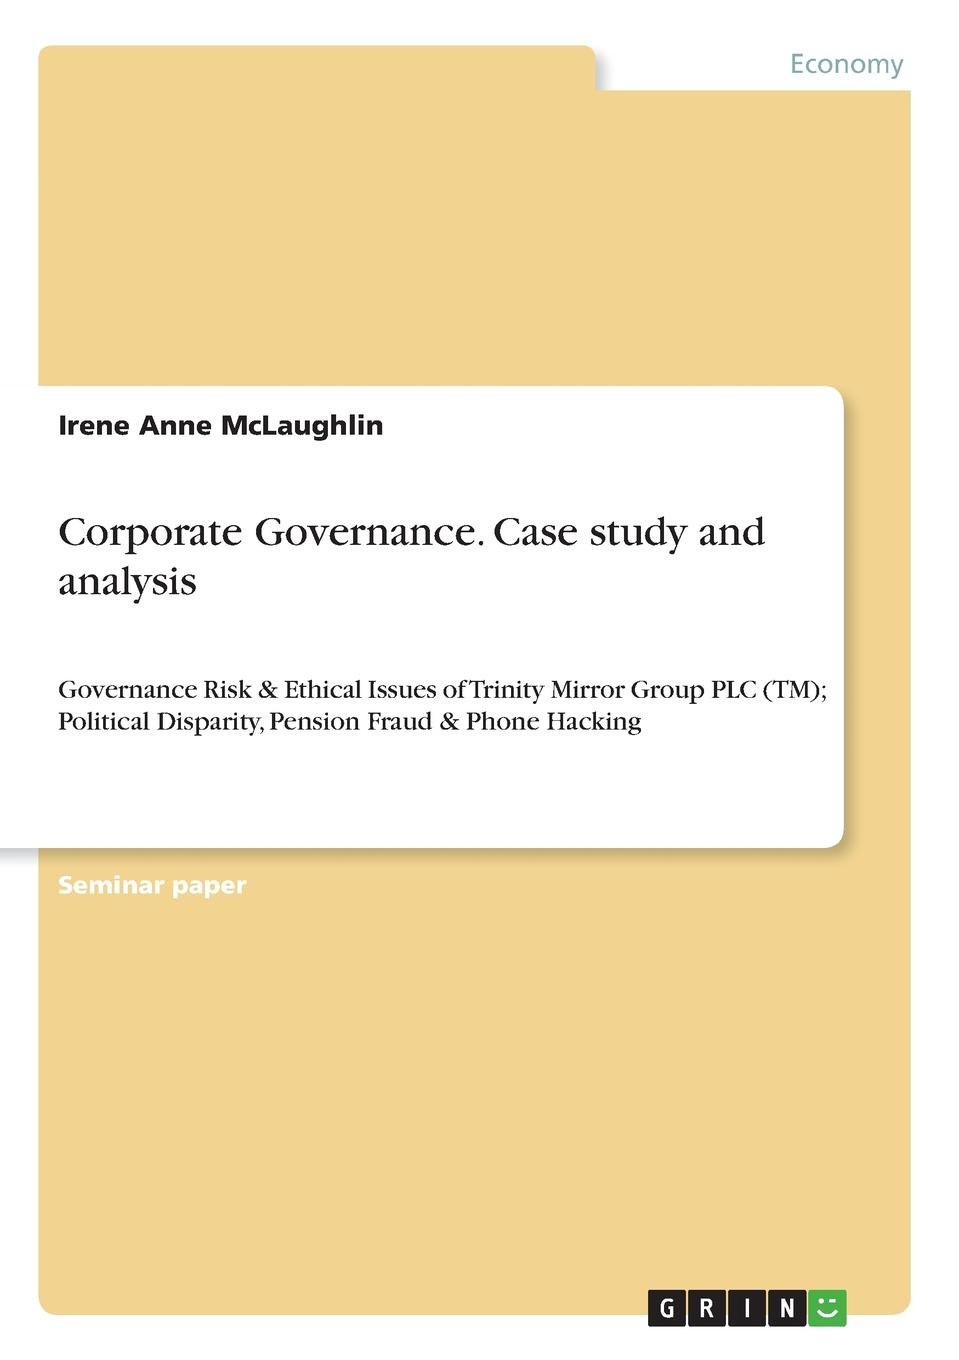 Irene Anne McLaughlin Corporate Governance. Case study and analysis minow nell corporate governance